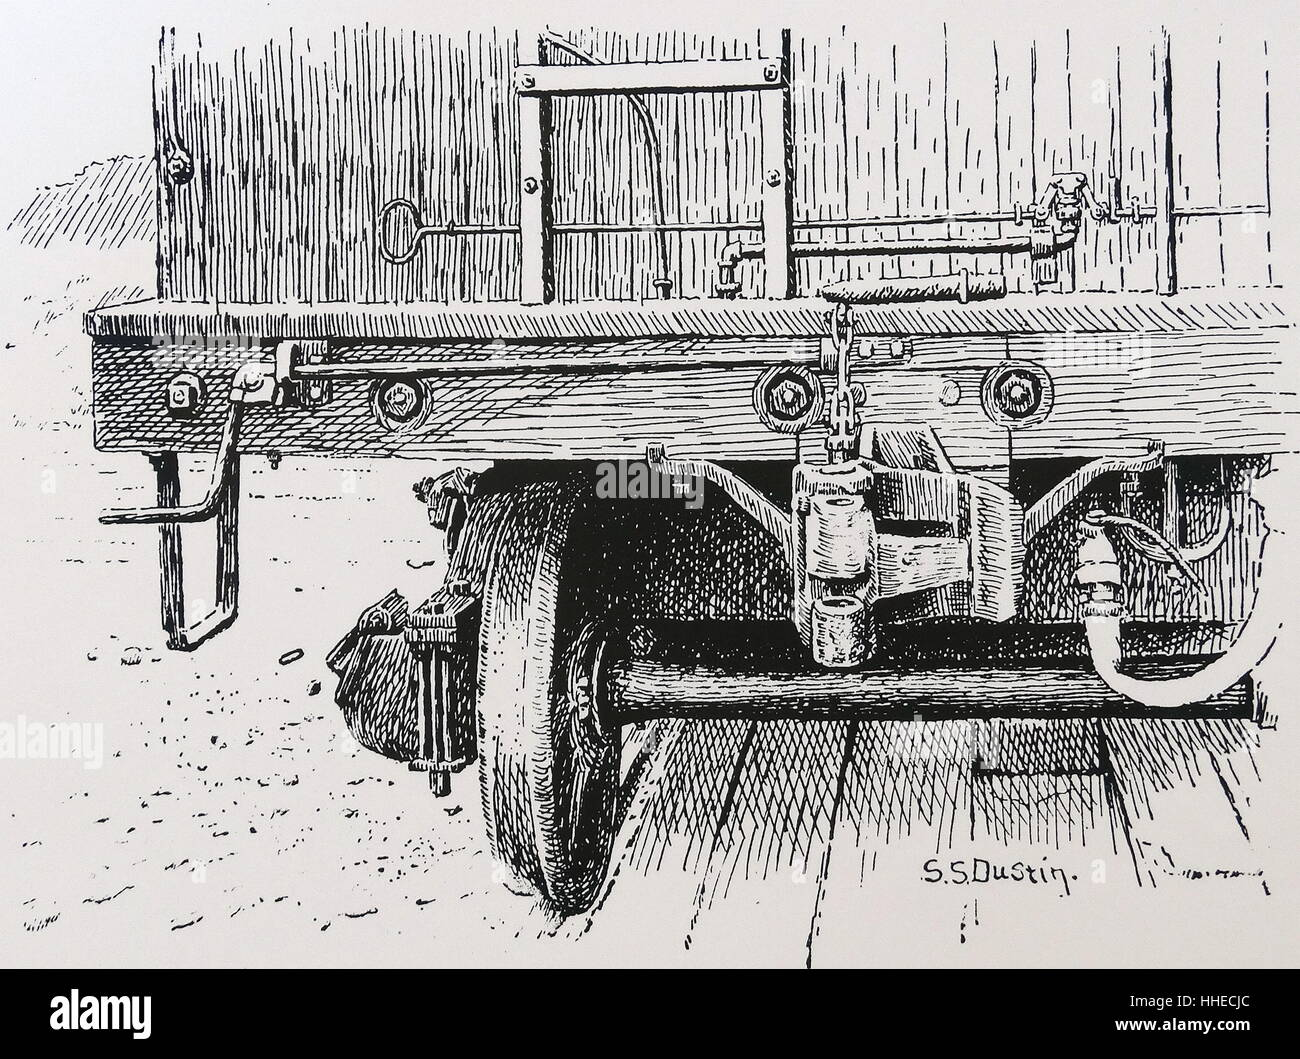 The Janney automatic coupler for railway cars. From The Railways of America. John Murray, London, 1890. - Stock Image